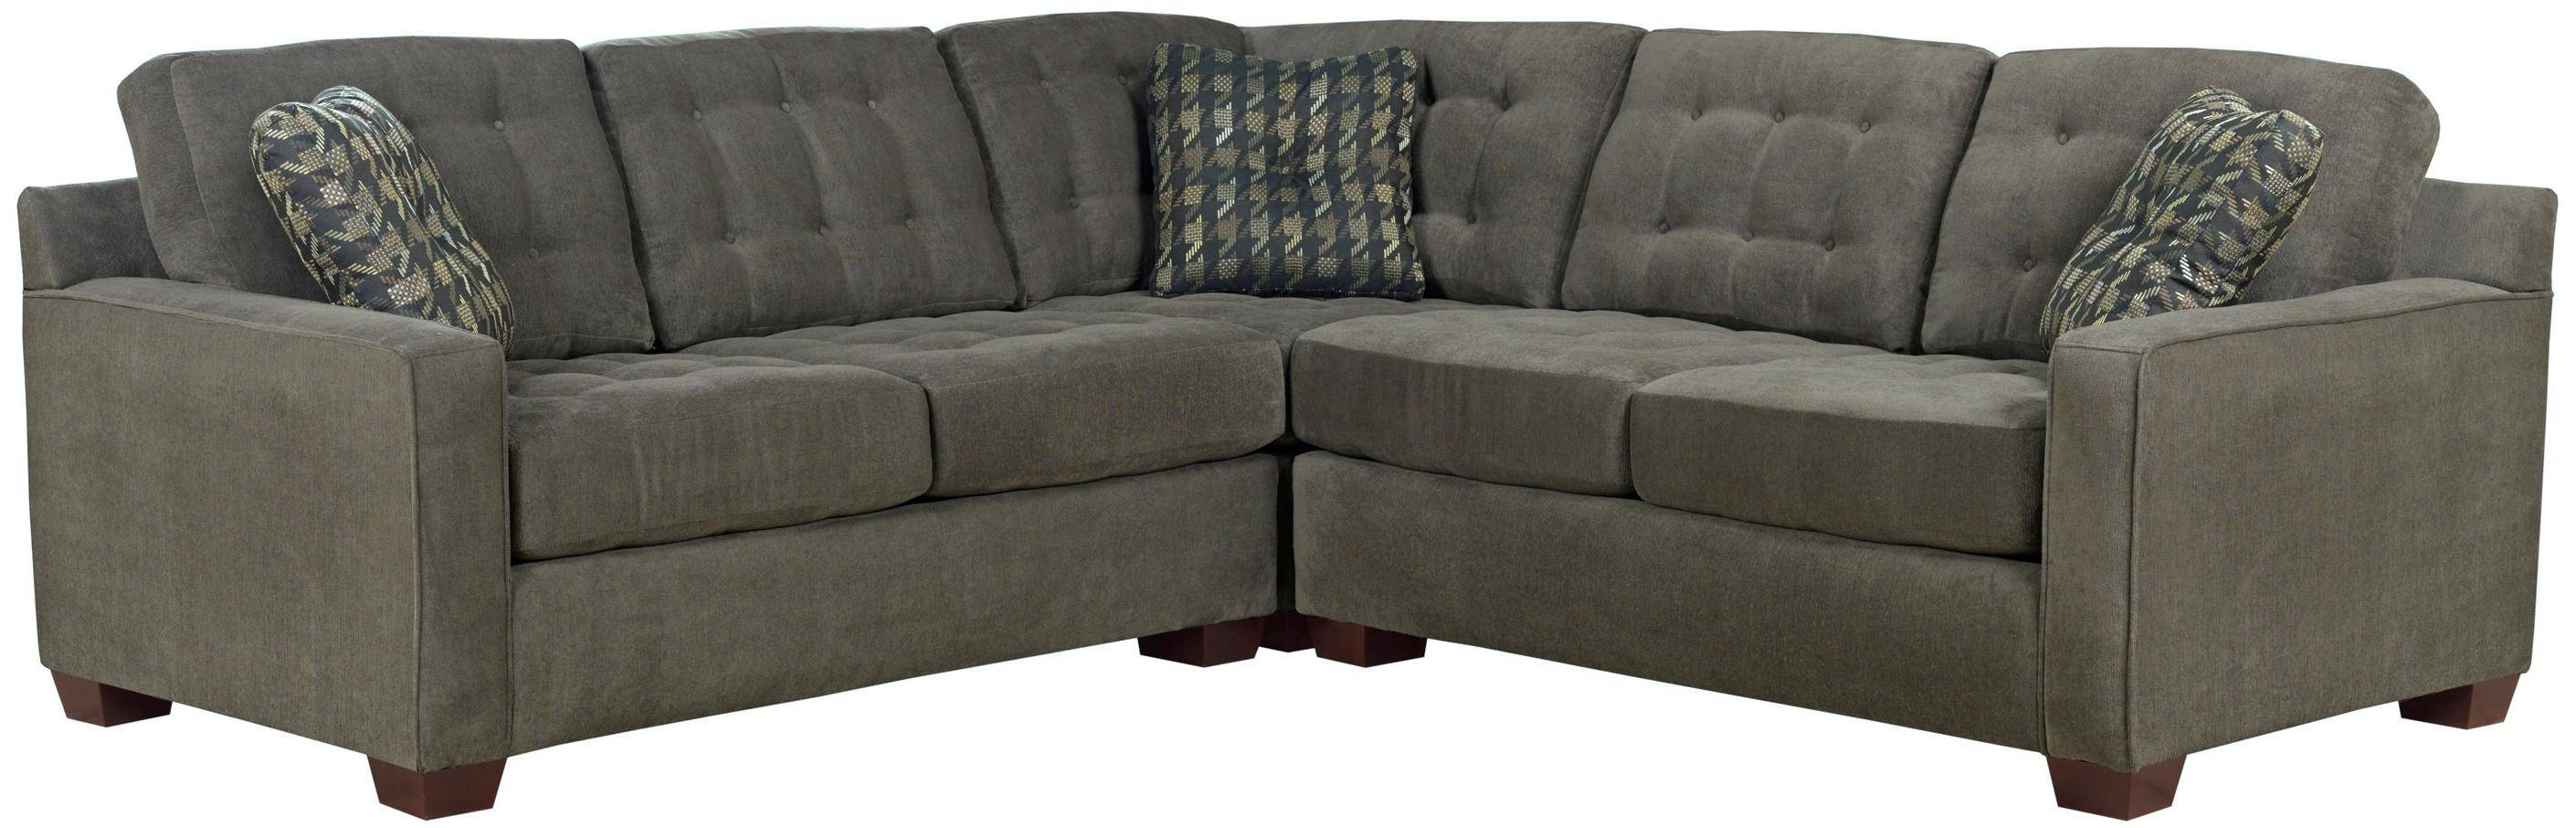 Broyhill Furniture Tribeca Contemporary L-Shaped Sectional Sofa regarding Broyhill Sectional Sofas (Image 13 of 30)